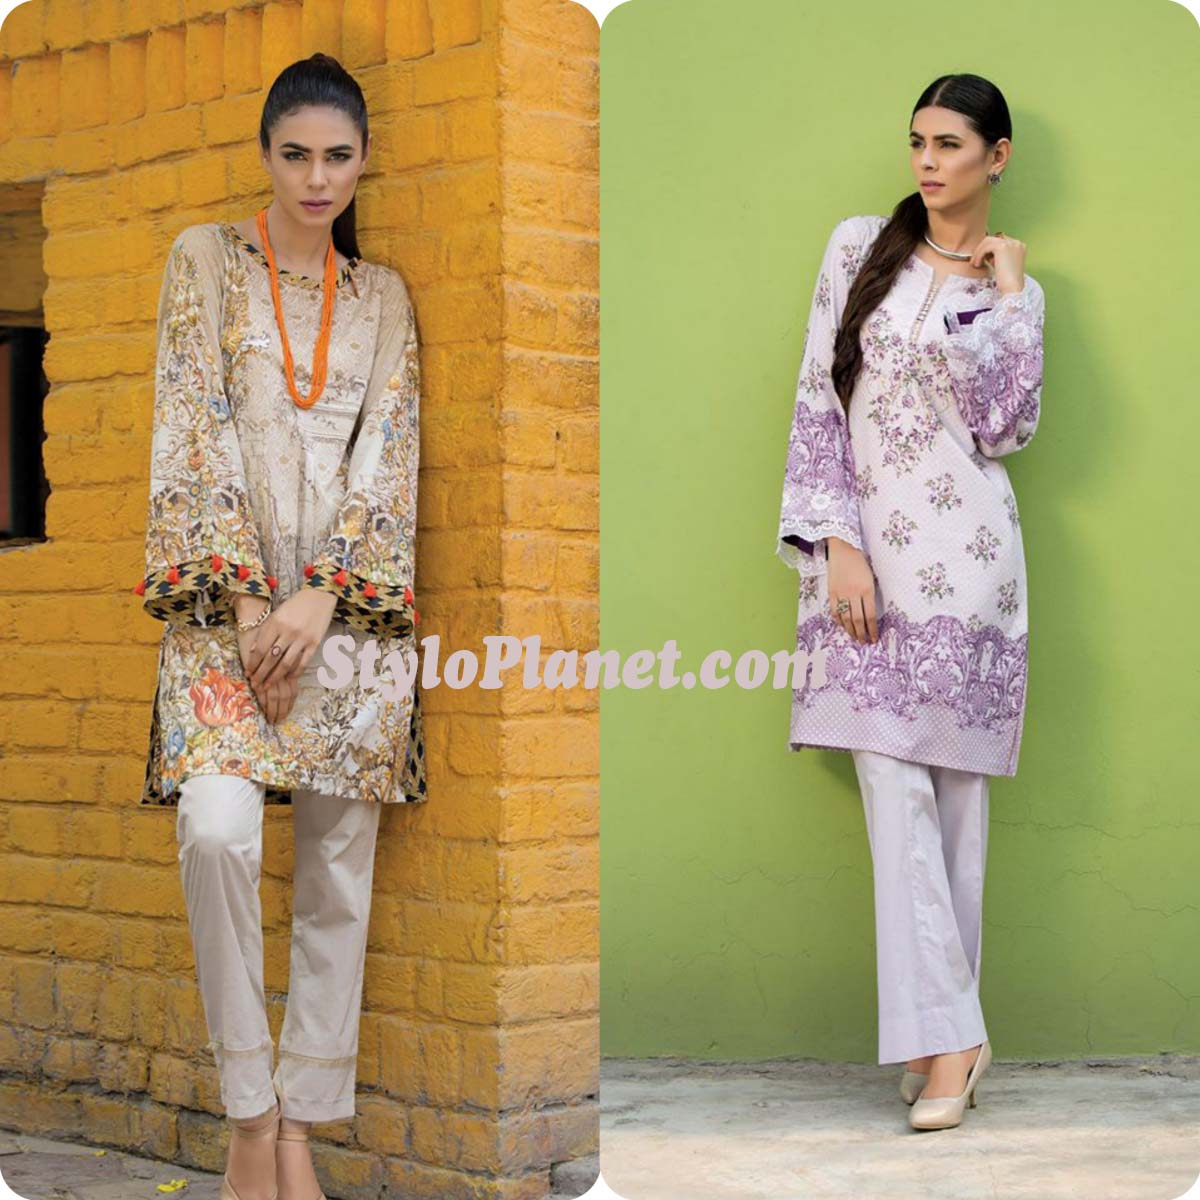 Kayseria New Eid-Ul-Adha Collection for Women 2016-2017 (6)